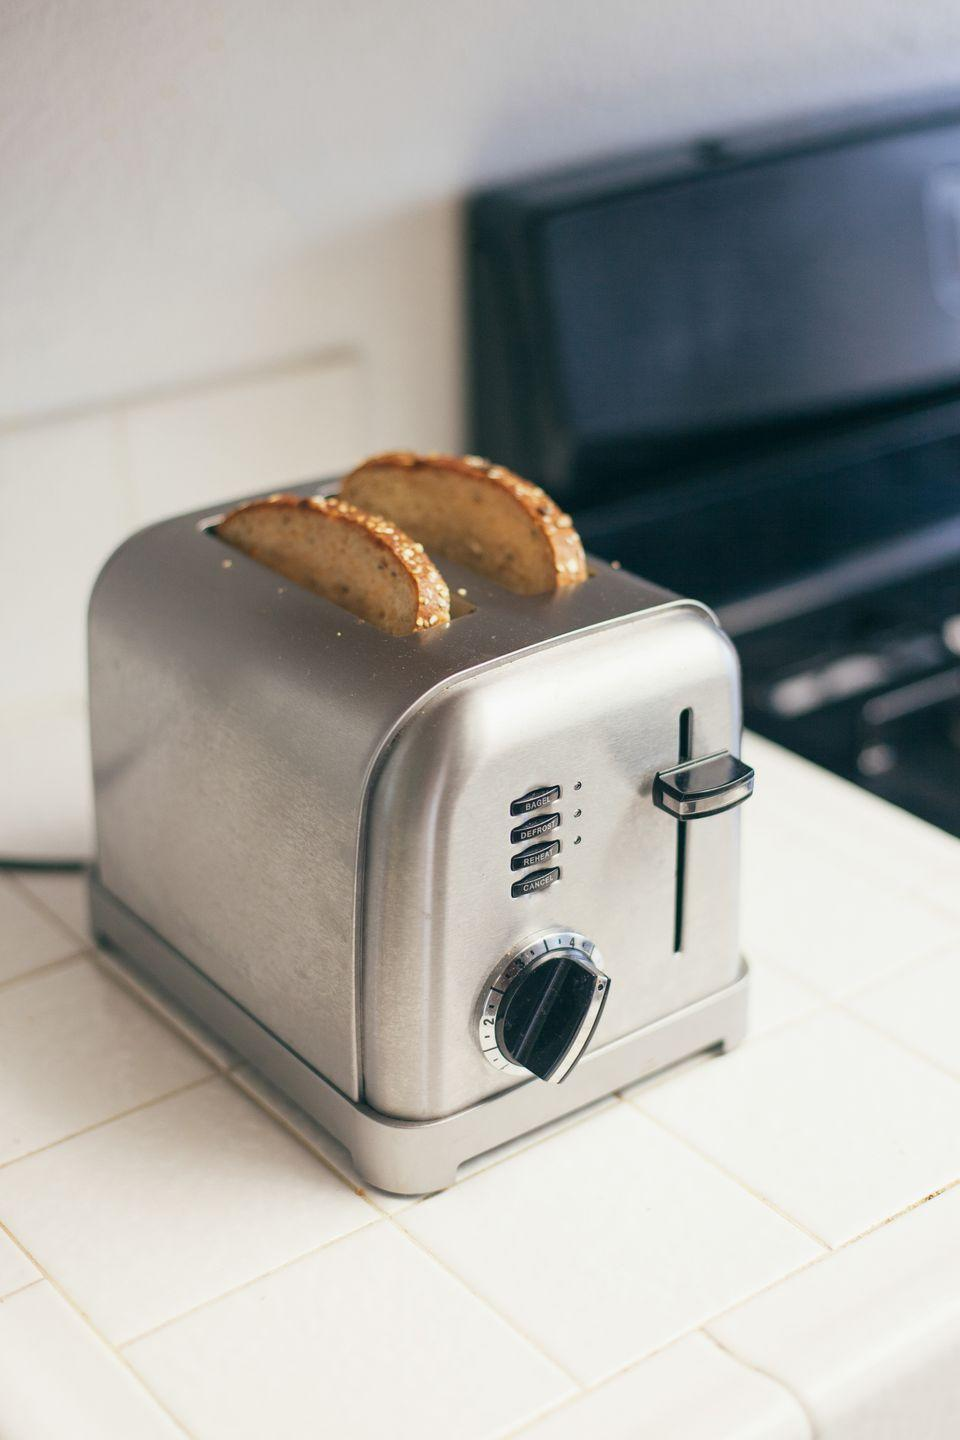 "<p>According to The Kitchn, <a href=""https://www.thekitchn.com/how-to-clean-the-toaster-cleaning-lessons-from-the-kitchn-74452"" rel=""nofollow noopener"" target=""_blank"" data-ylk=""slk:you should start with the crumb tray"" class=""link rapid-noclick-resp"">you should start with the crumb tray</a> when cleaning out your toaster. After making sure your appliance is unplugged, wash and dry your toaster's crumb tray, using a small pastry or basting brush to get into the hard-to-reach corners. Once finished, you can replace the tray. </p><p>To clean the toaster's exterior, wipe it down with a damp cloth and gentle soap. If your toaster is stainless steel, you can use a bit of vinegar to make it shine. </p>"